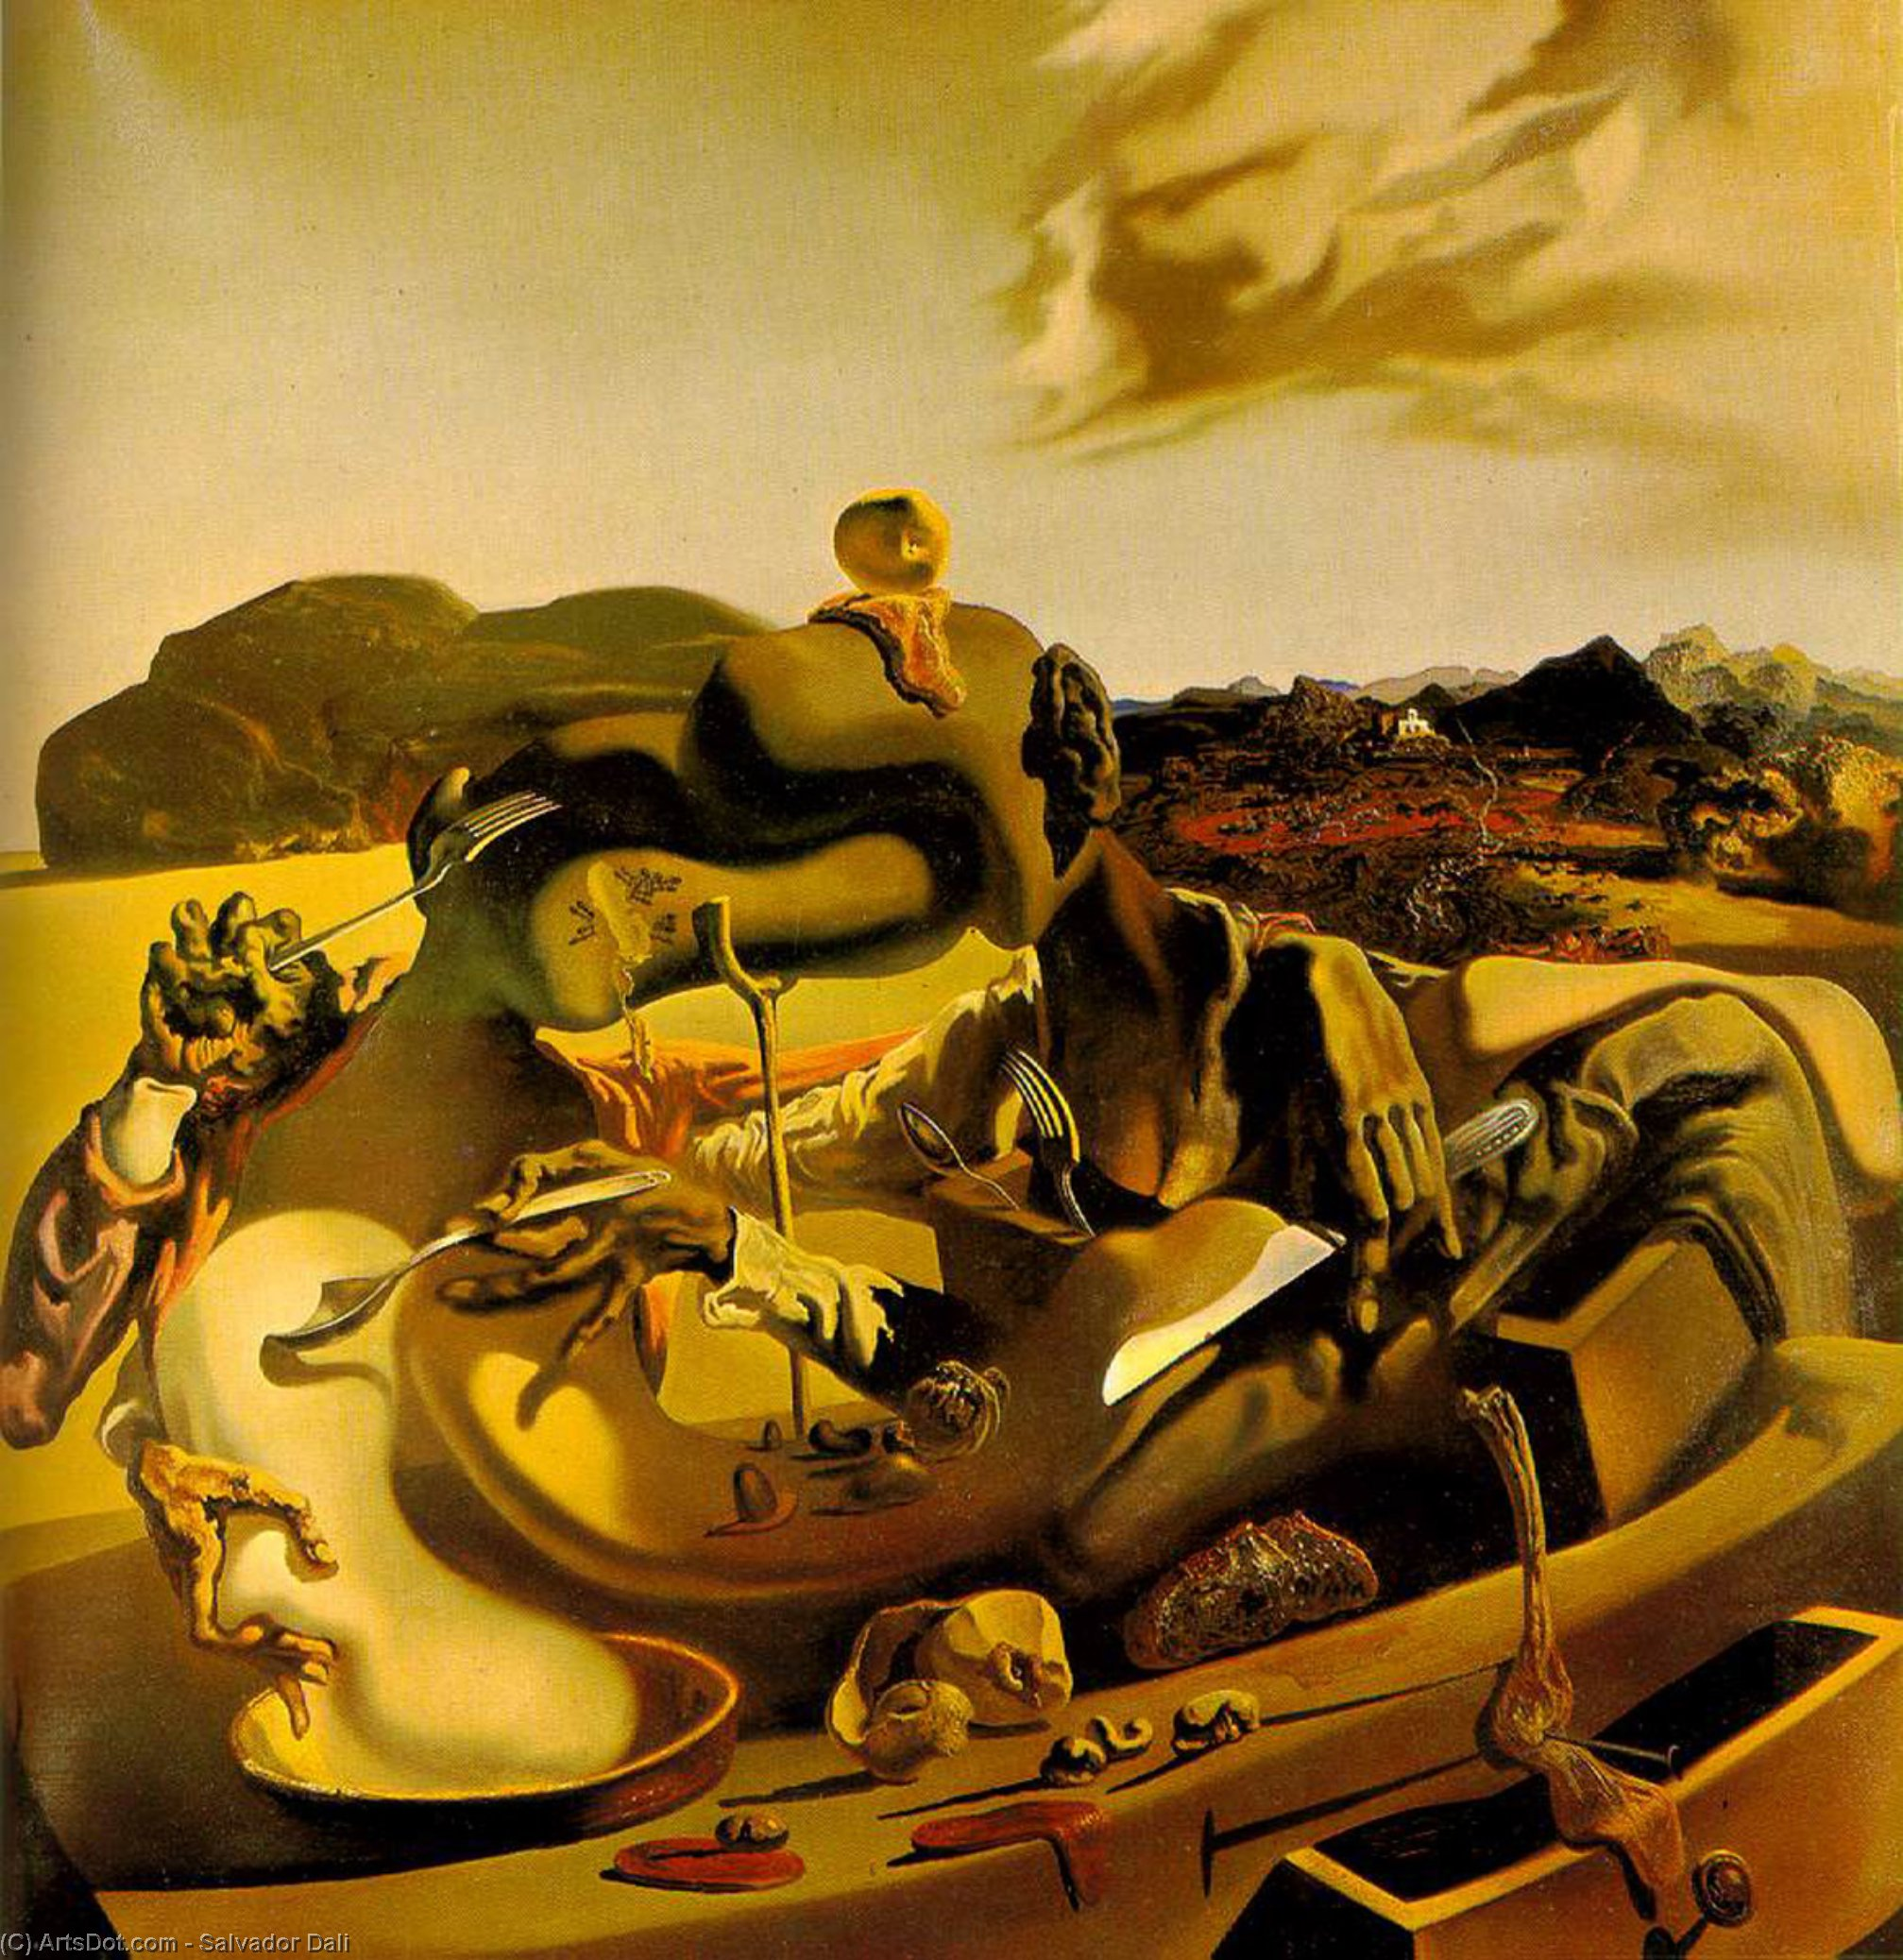 Wikioo.org - The Encyclopedia of Fine Arts - Painting, Artwork by Salvador Dali - Autumn Cannibalism